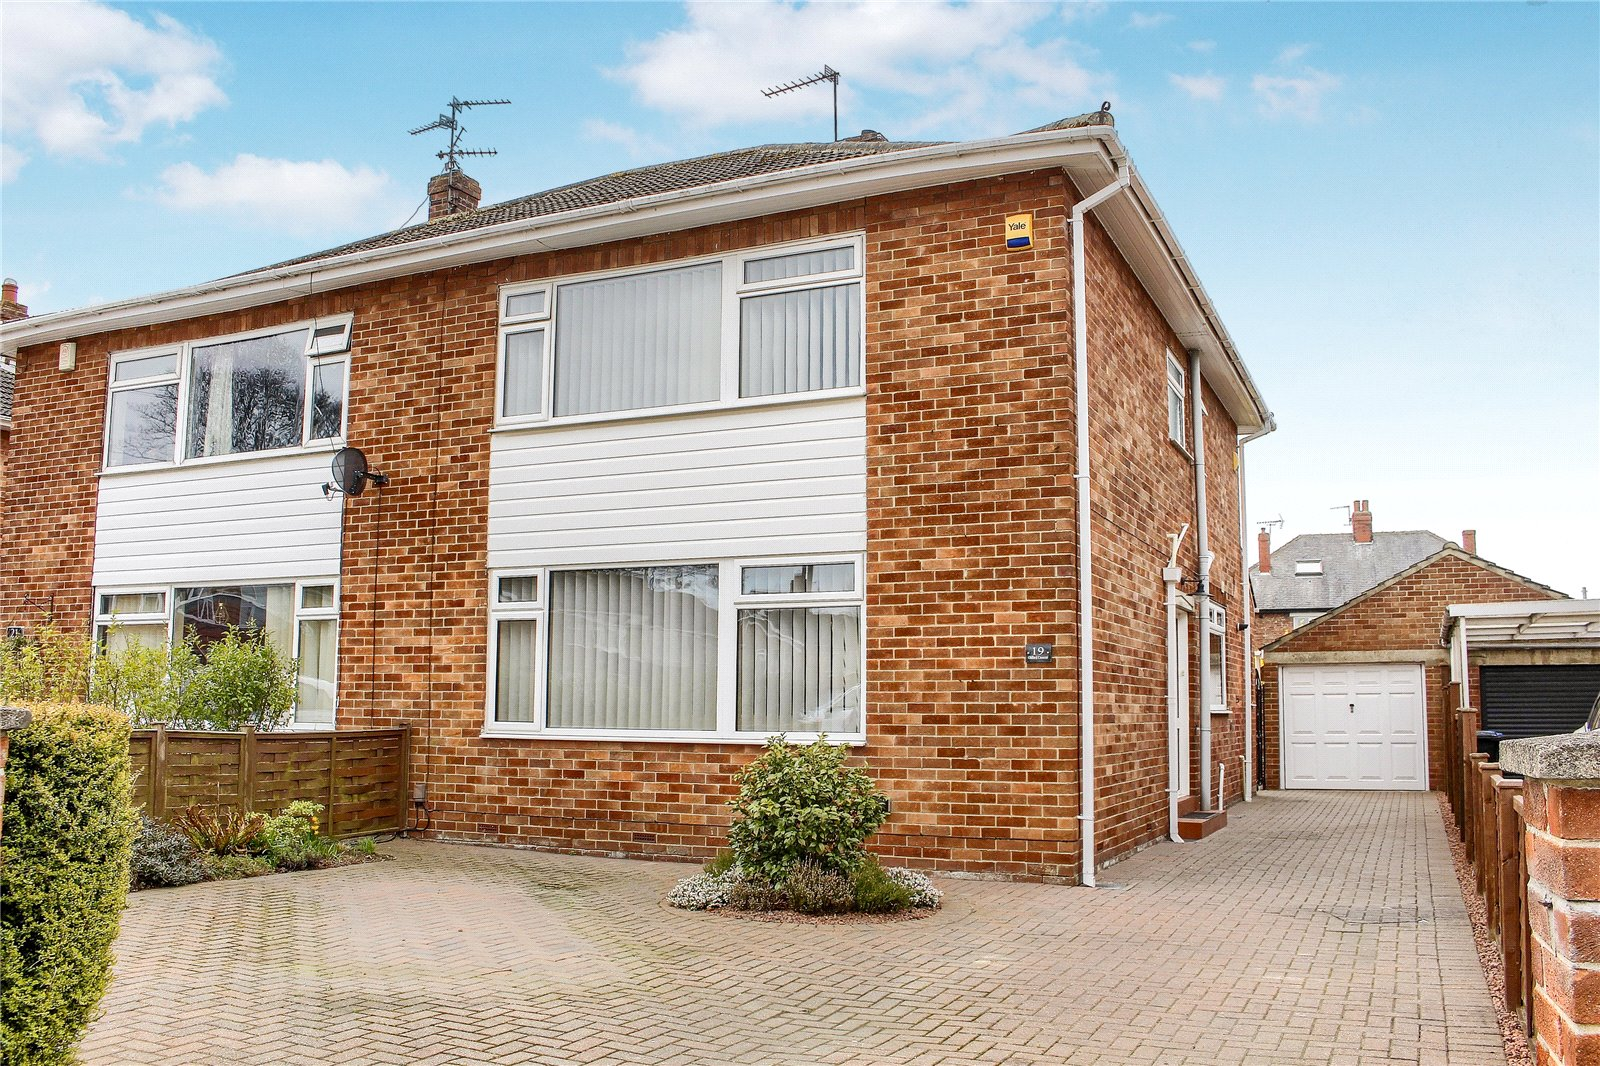 4 bed house for sale in Oldford Crescent, Acklam 1